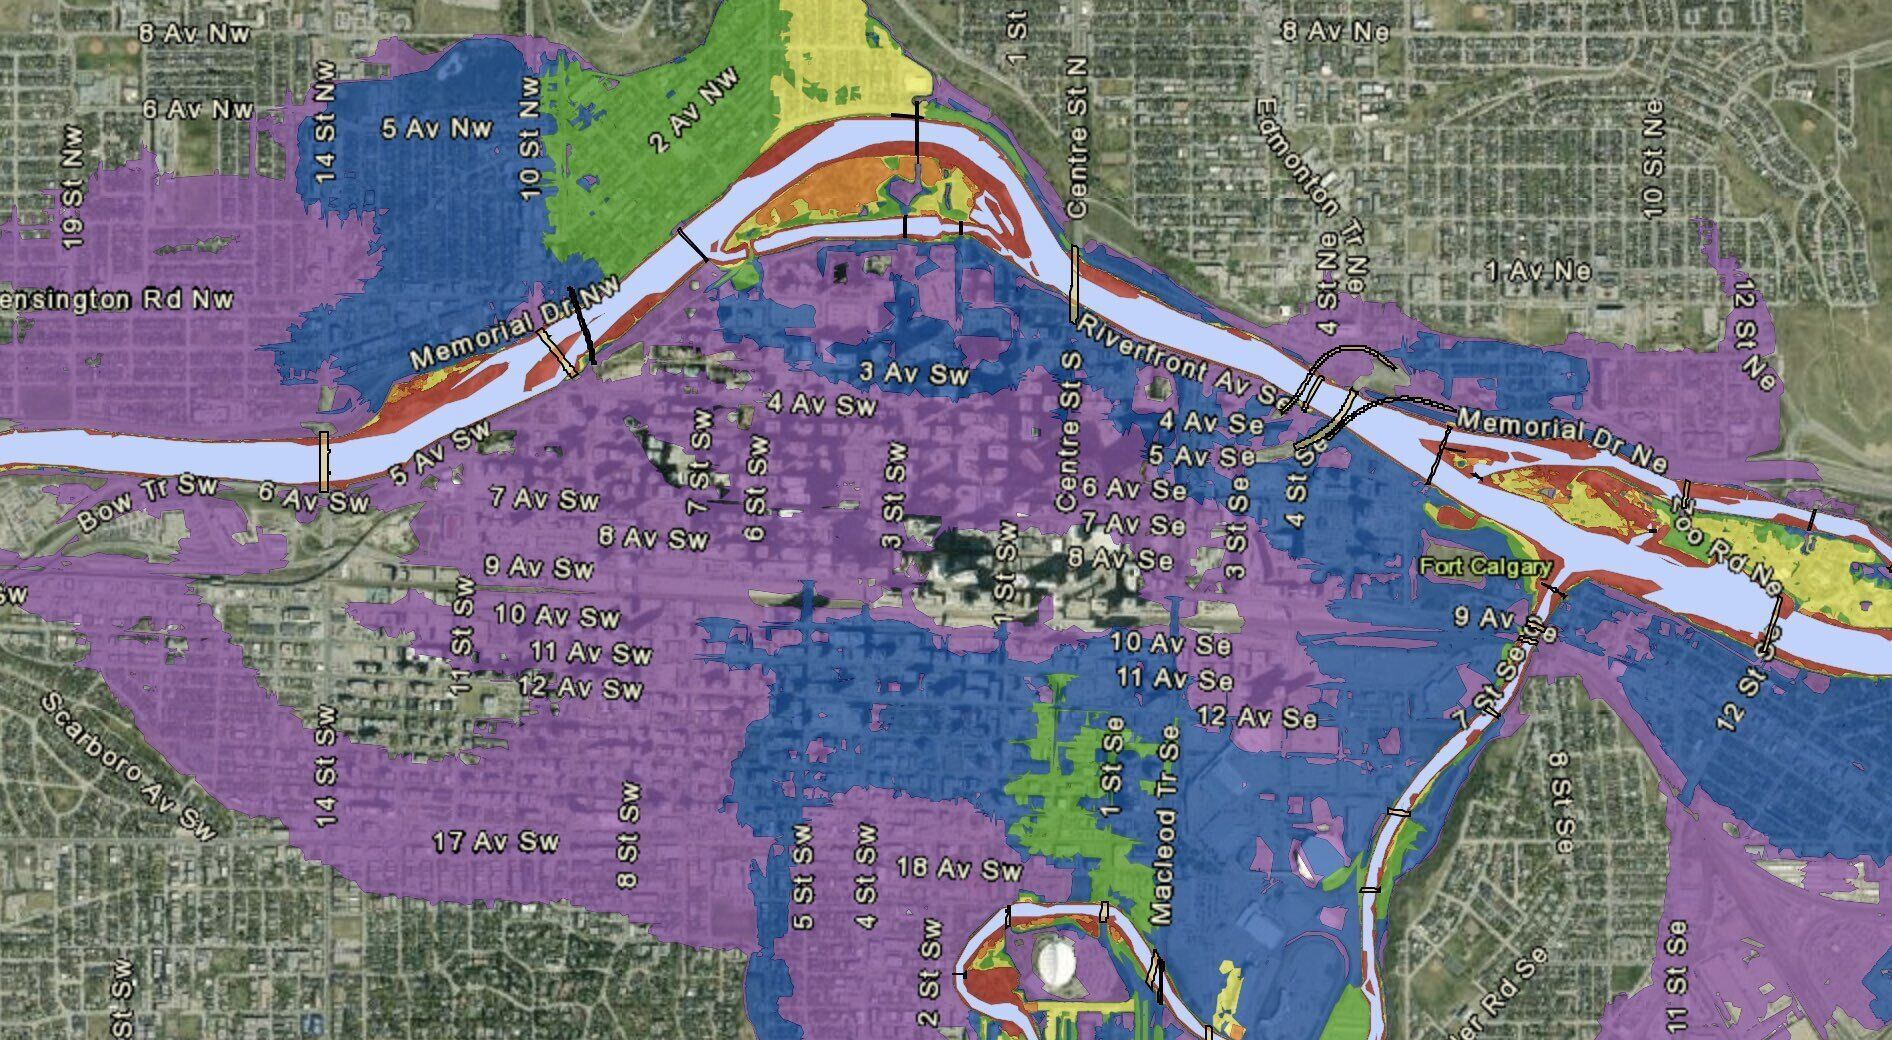 Areas in blue are flood zones for 50- to 100-year floods. Purple is 100- to 1,000-year floods. (Source: City of Calgary flood hazard mapping)